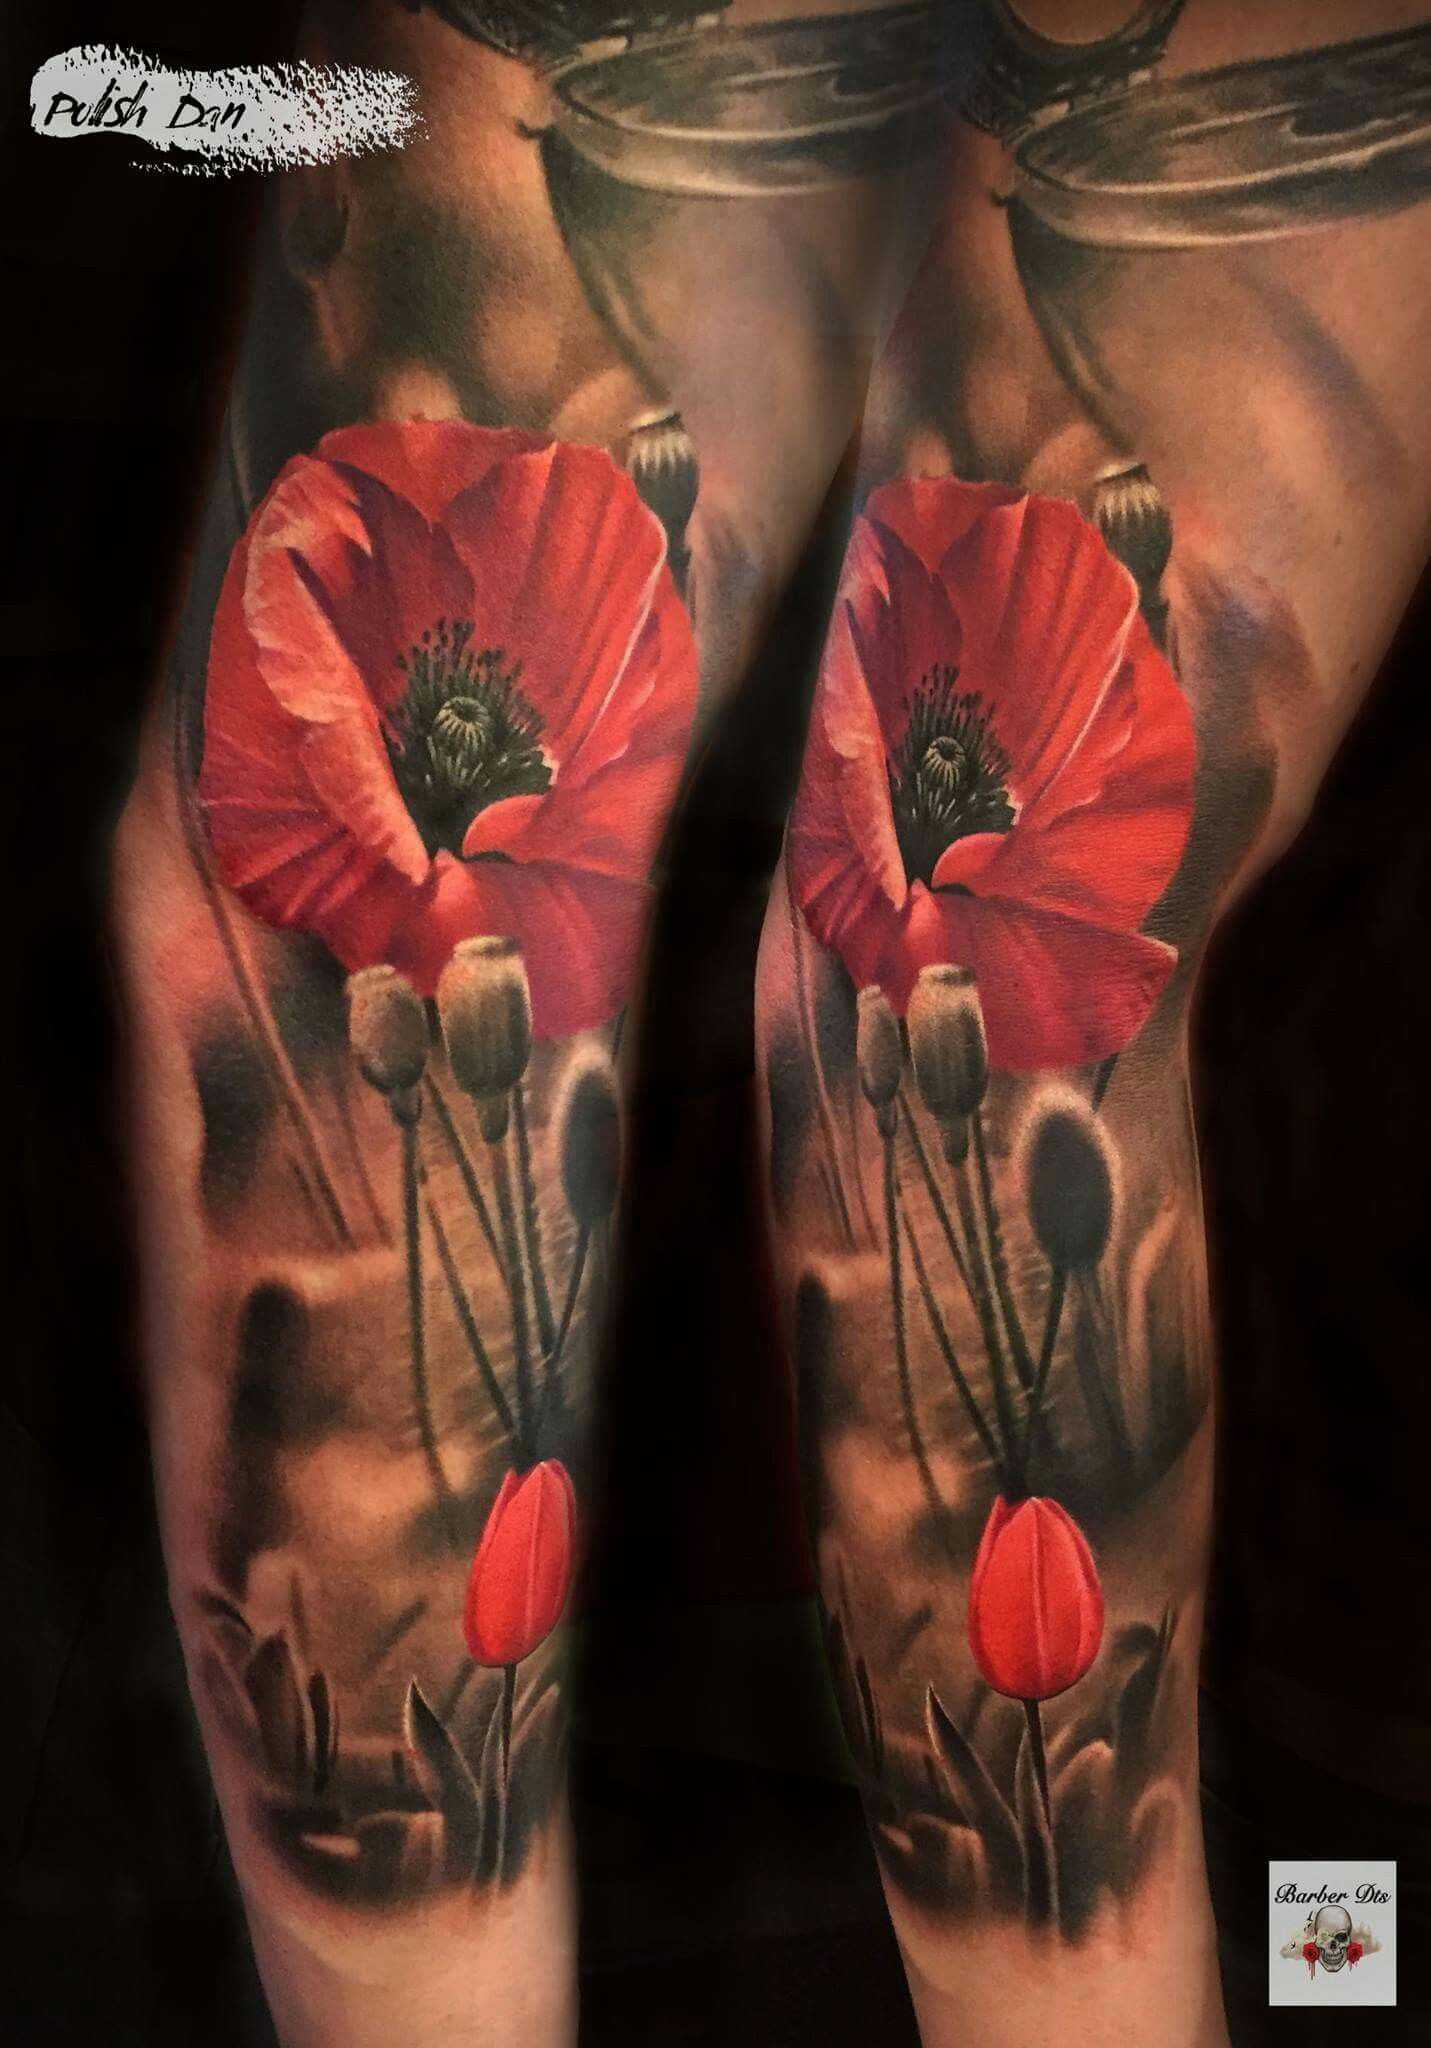 Pin By Thomas On Tattoo Flower Poppies Tattoo Tattoos For Guys Flower Tattoos